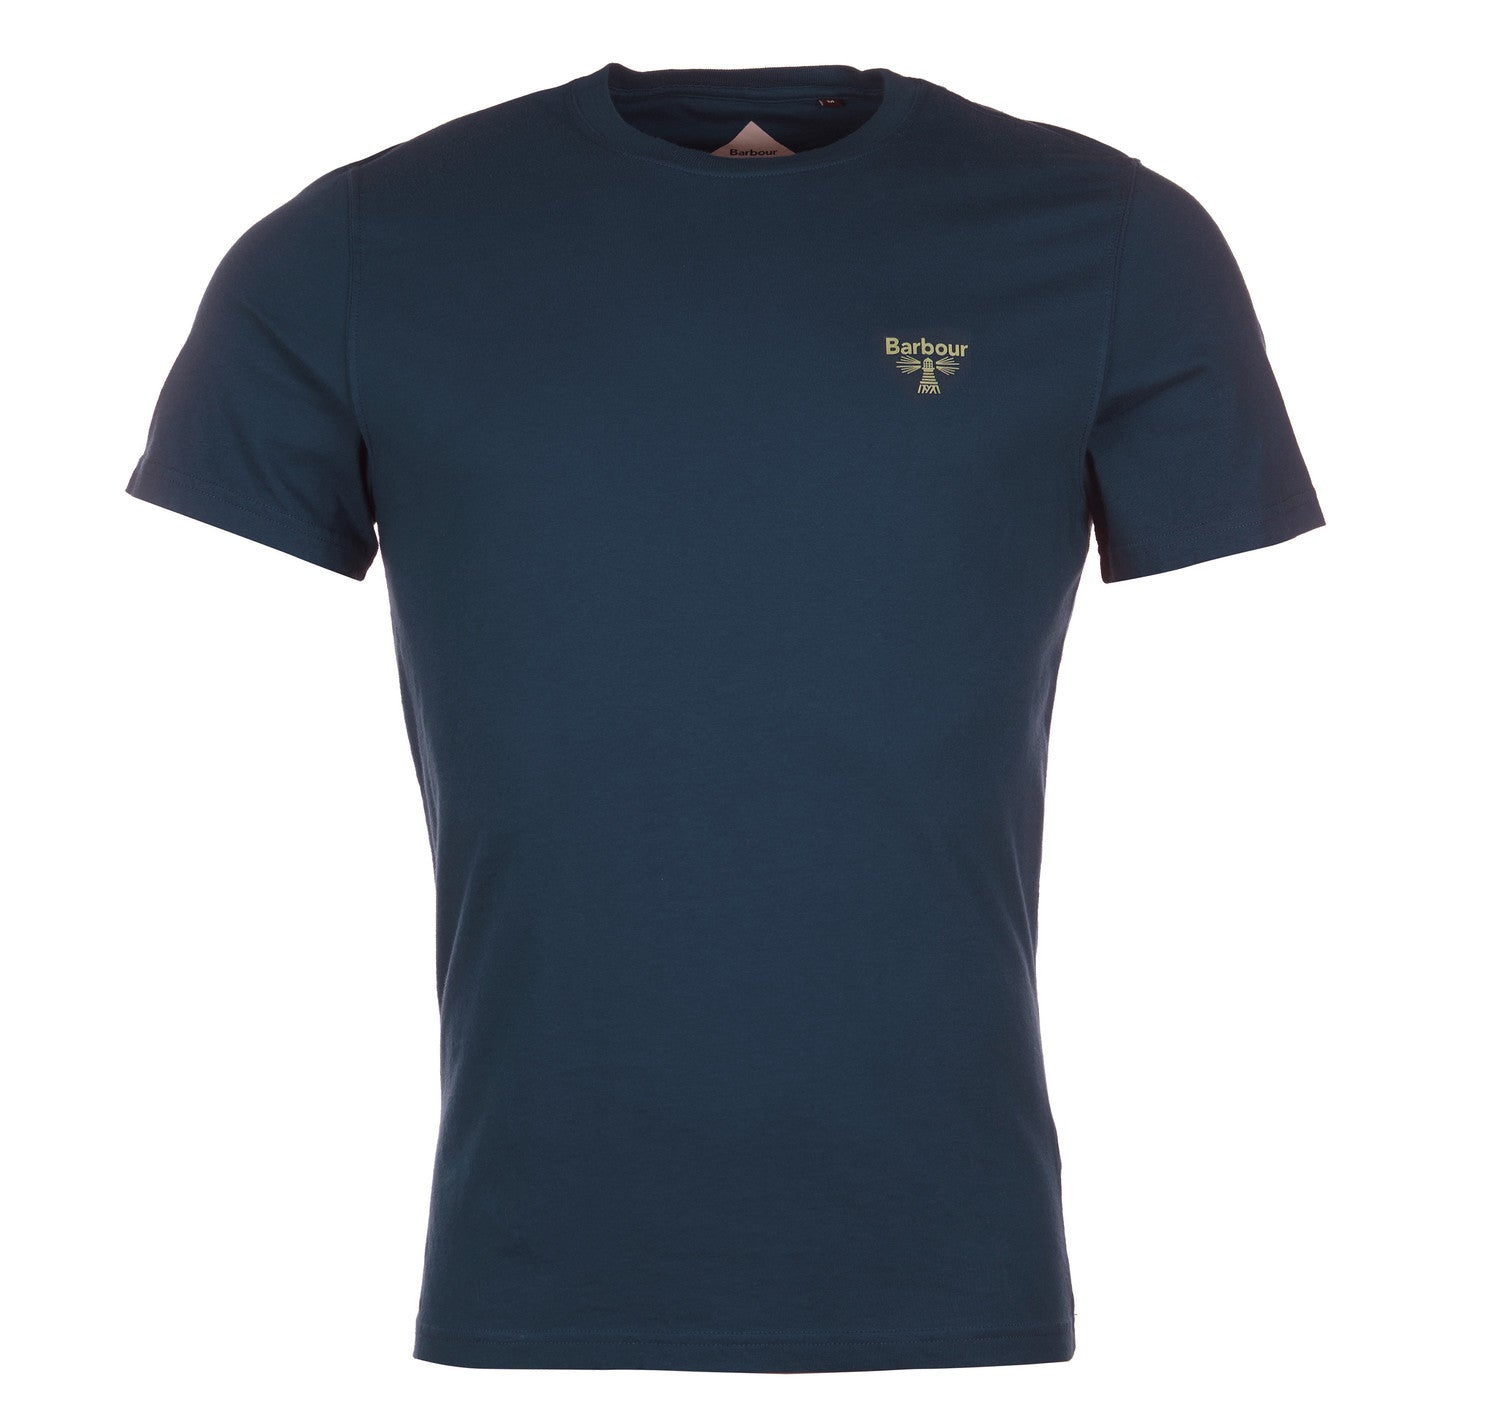 Barbour Beacon Small Logo Tee New Navy Barbour Beacon - 7 clothing Cardiff